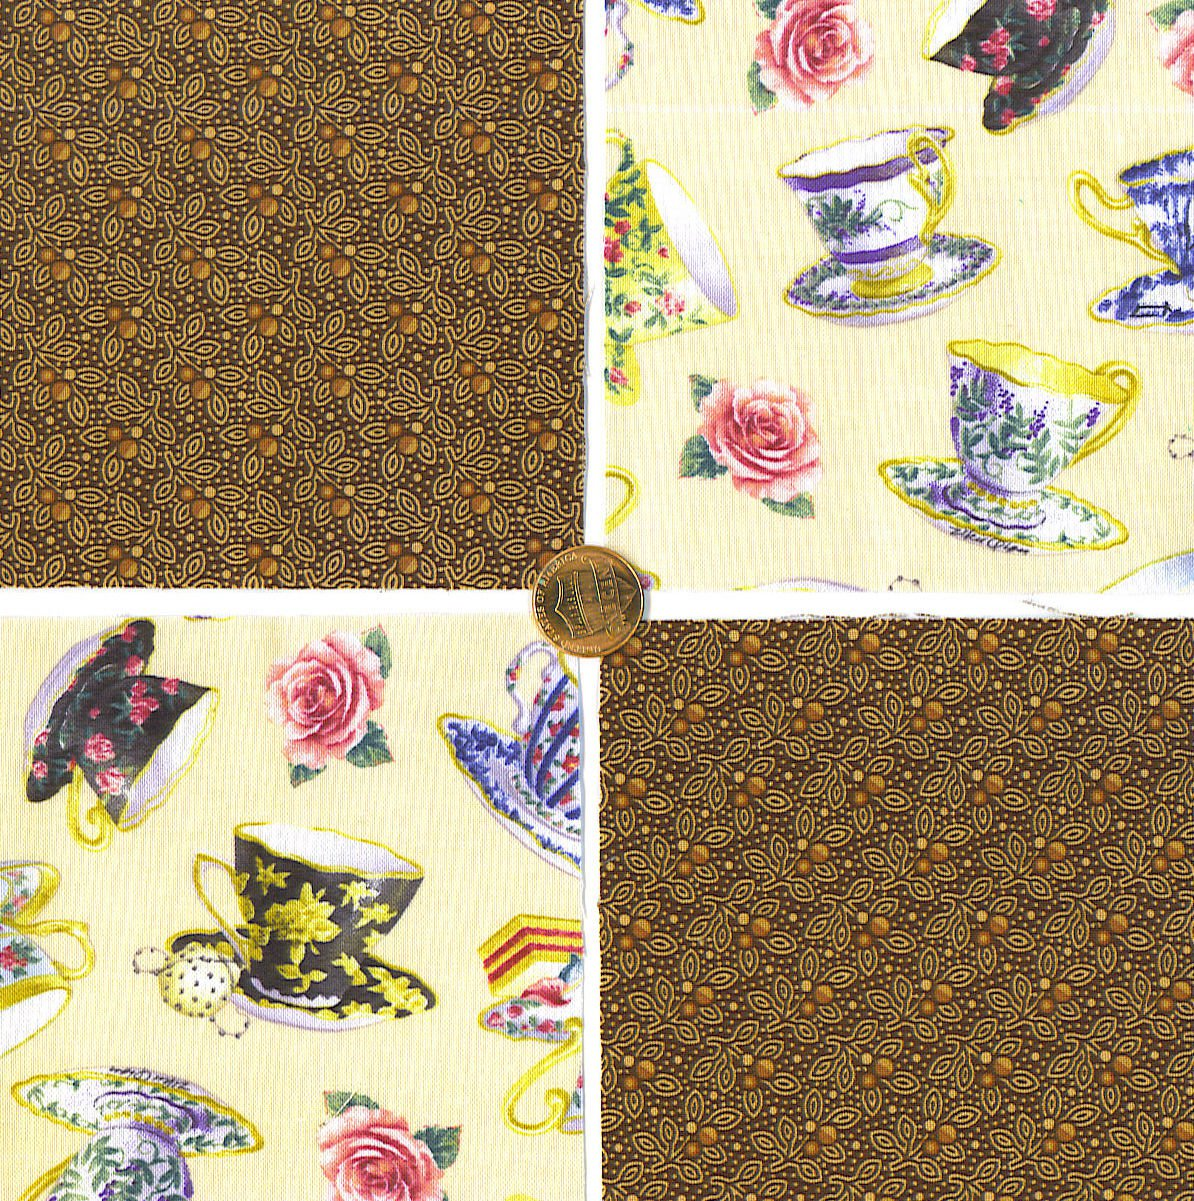 Teacups and Tea Leaves Cotton Craft Quilt Fabric Squares KL1